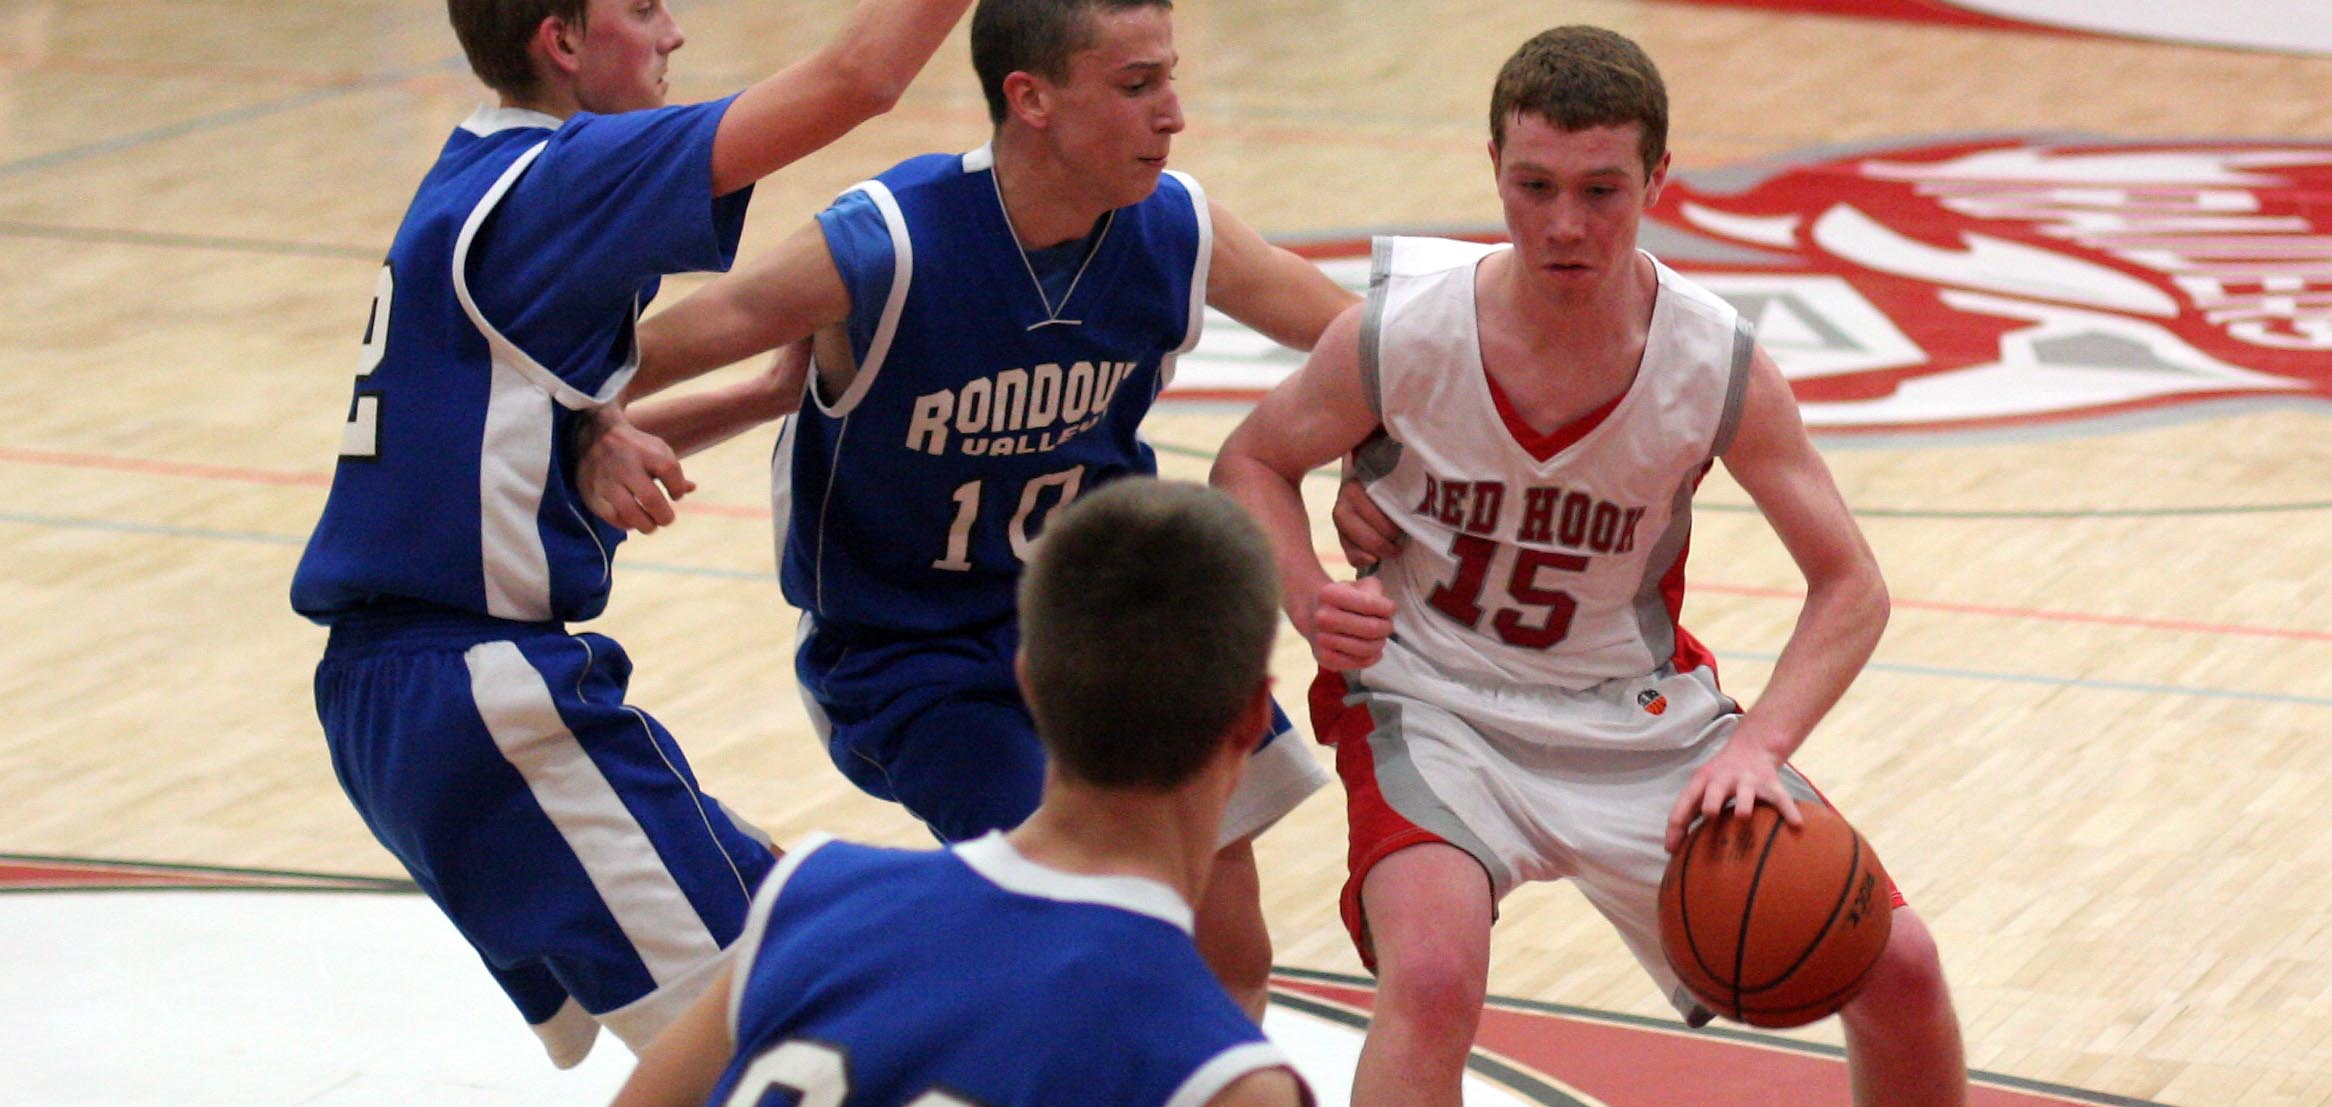 A look back at 2012: Paddy Parr (#15) scored 11 in the second quarter to help Red Hook extend their lead to 36-9 over Rondout.